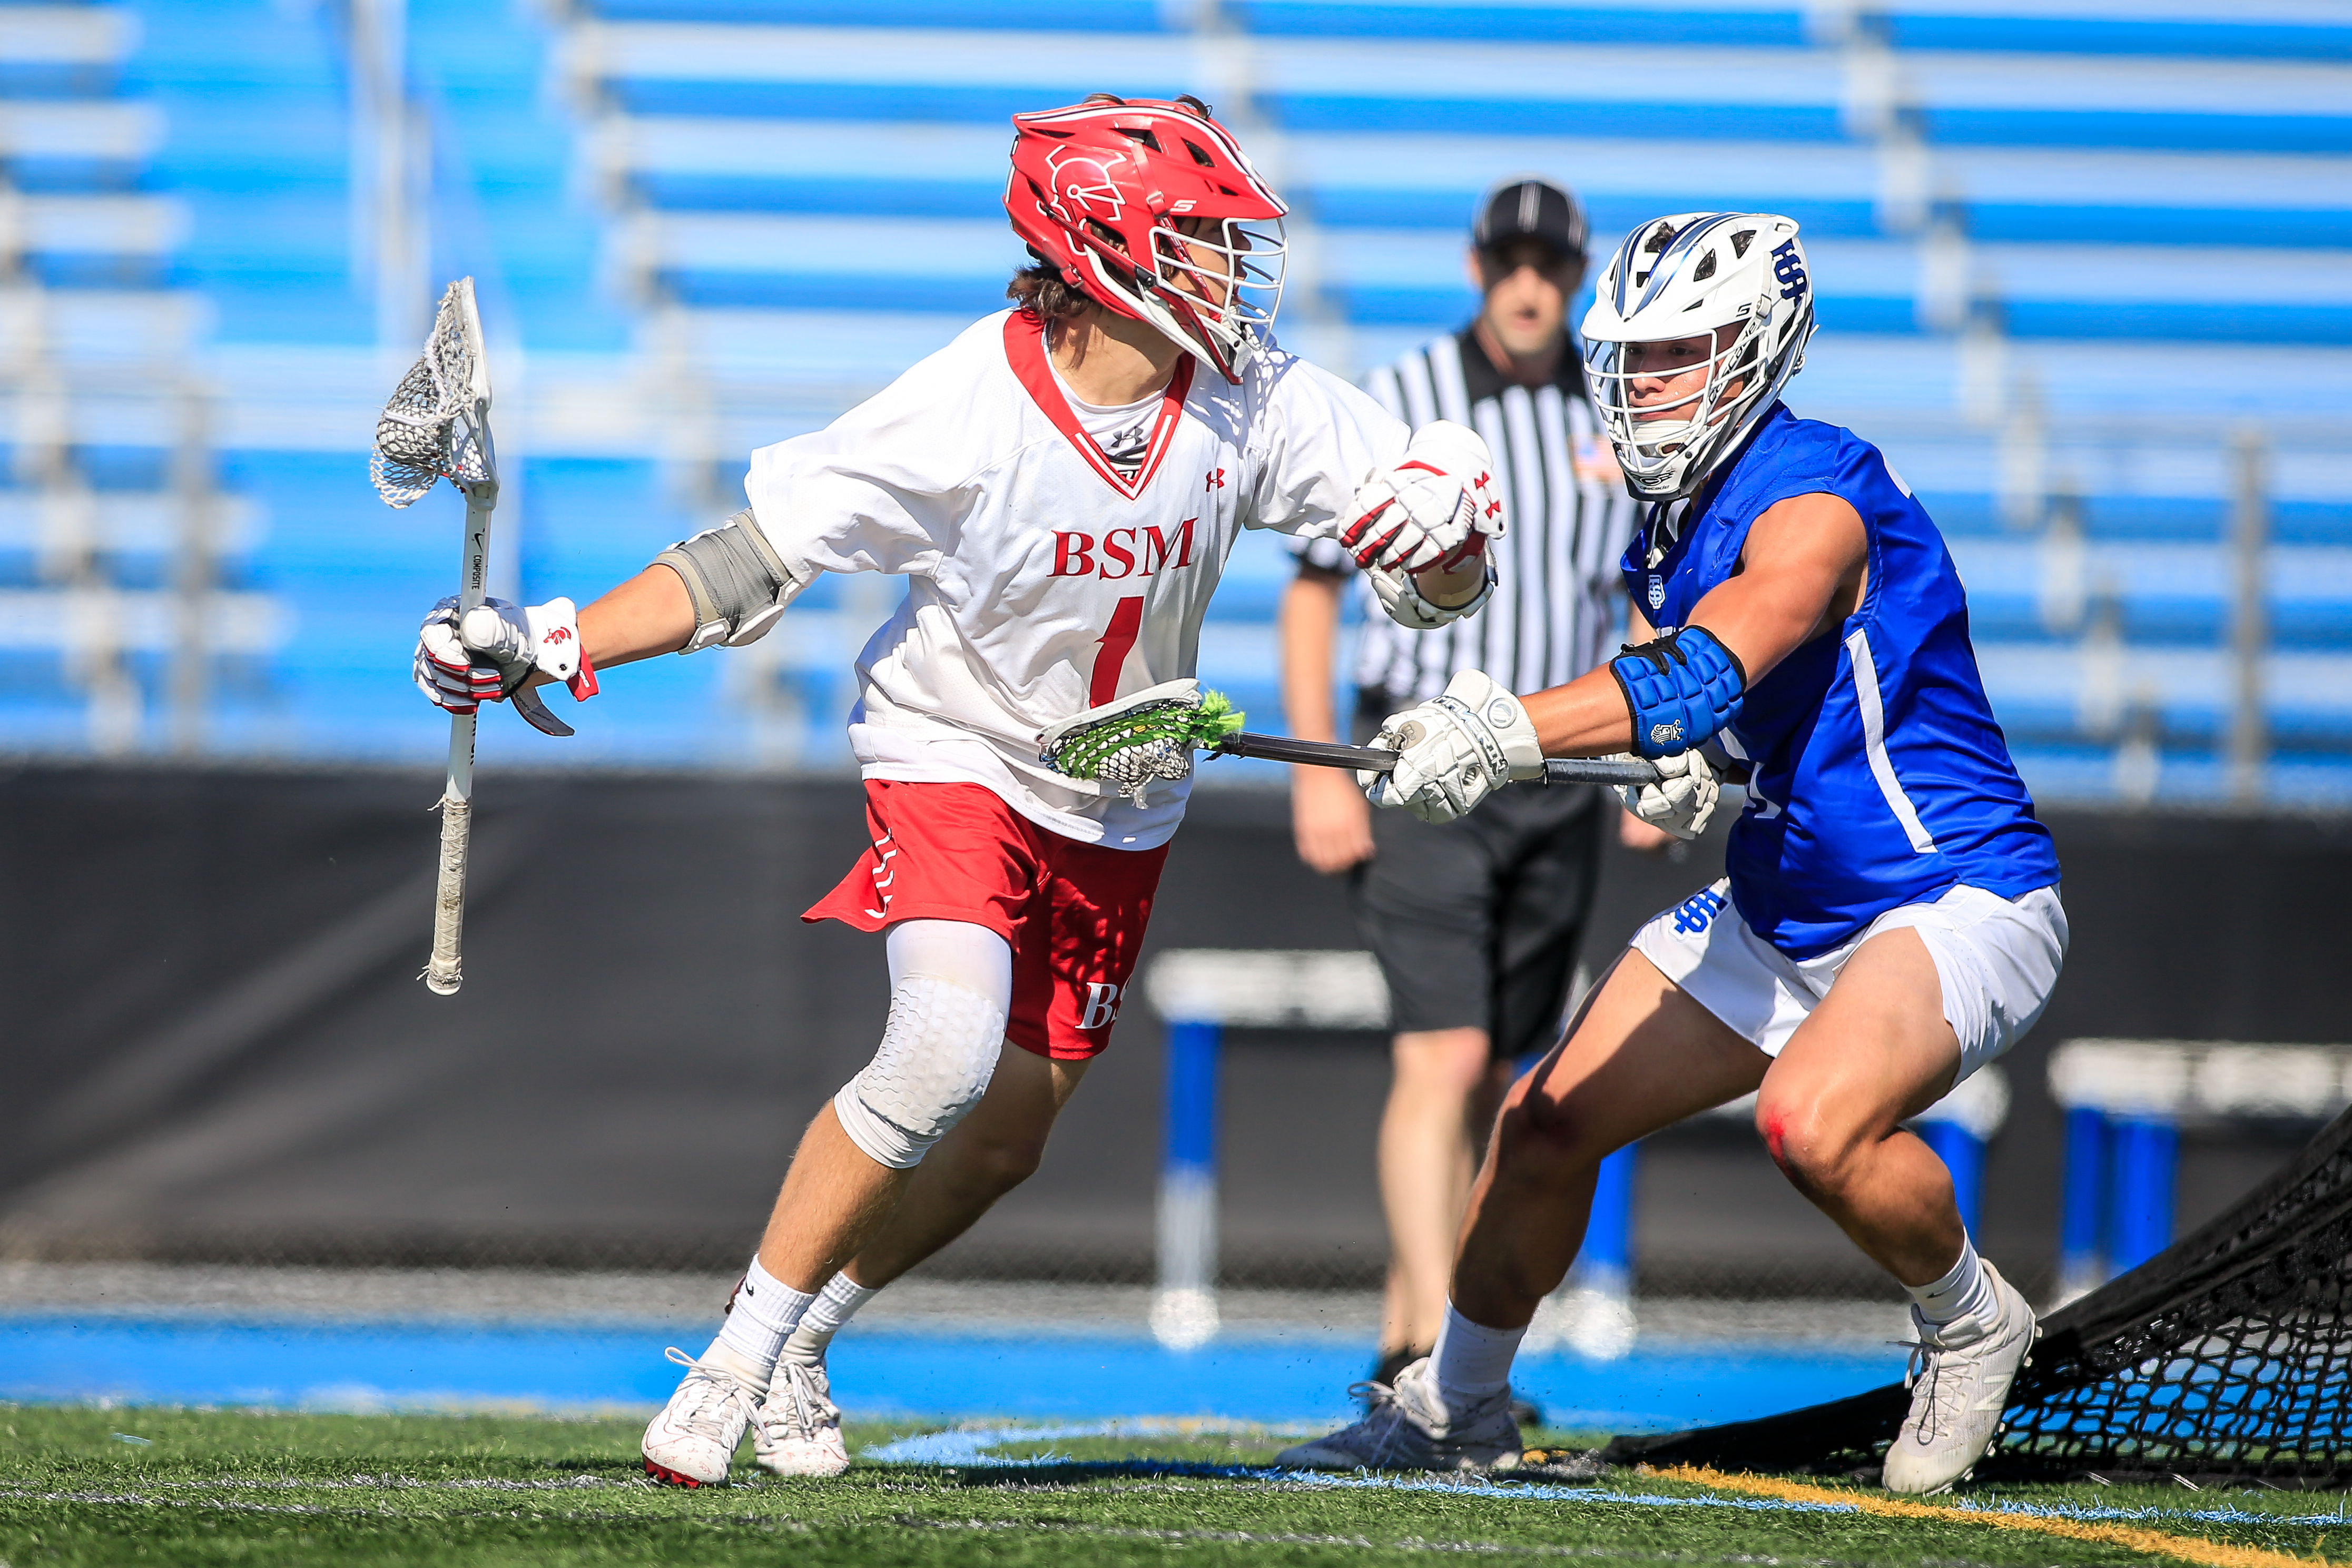 Jack VanOverbeke was a key part of Benilde-St. Margaret's attack in 2019. He'll likely be a key piece for the Red Knights once again next year. Photo by Mark Hvidsten, SportsEngine